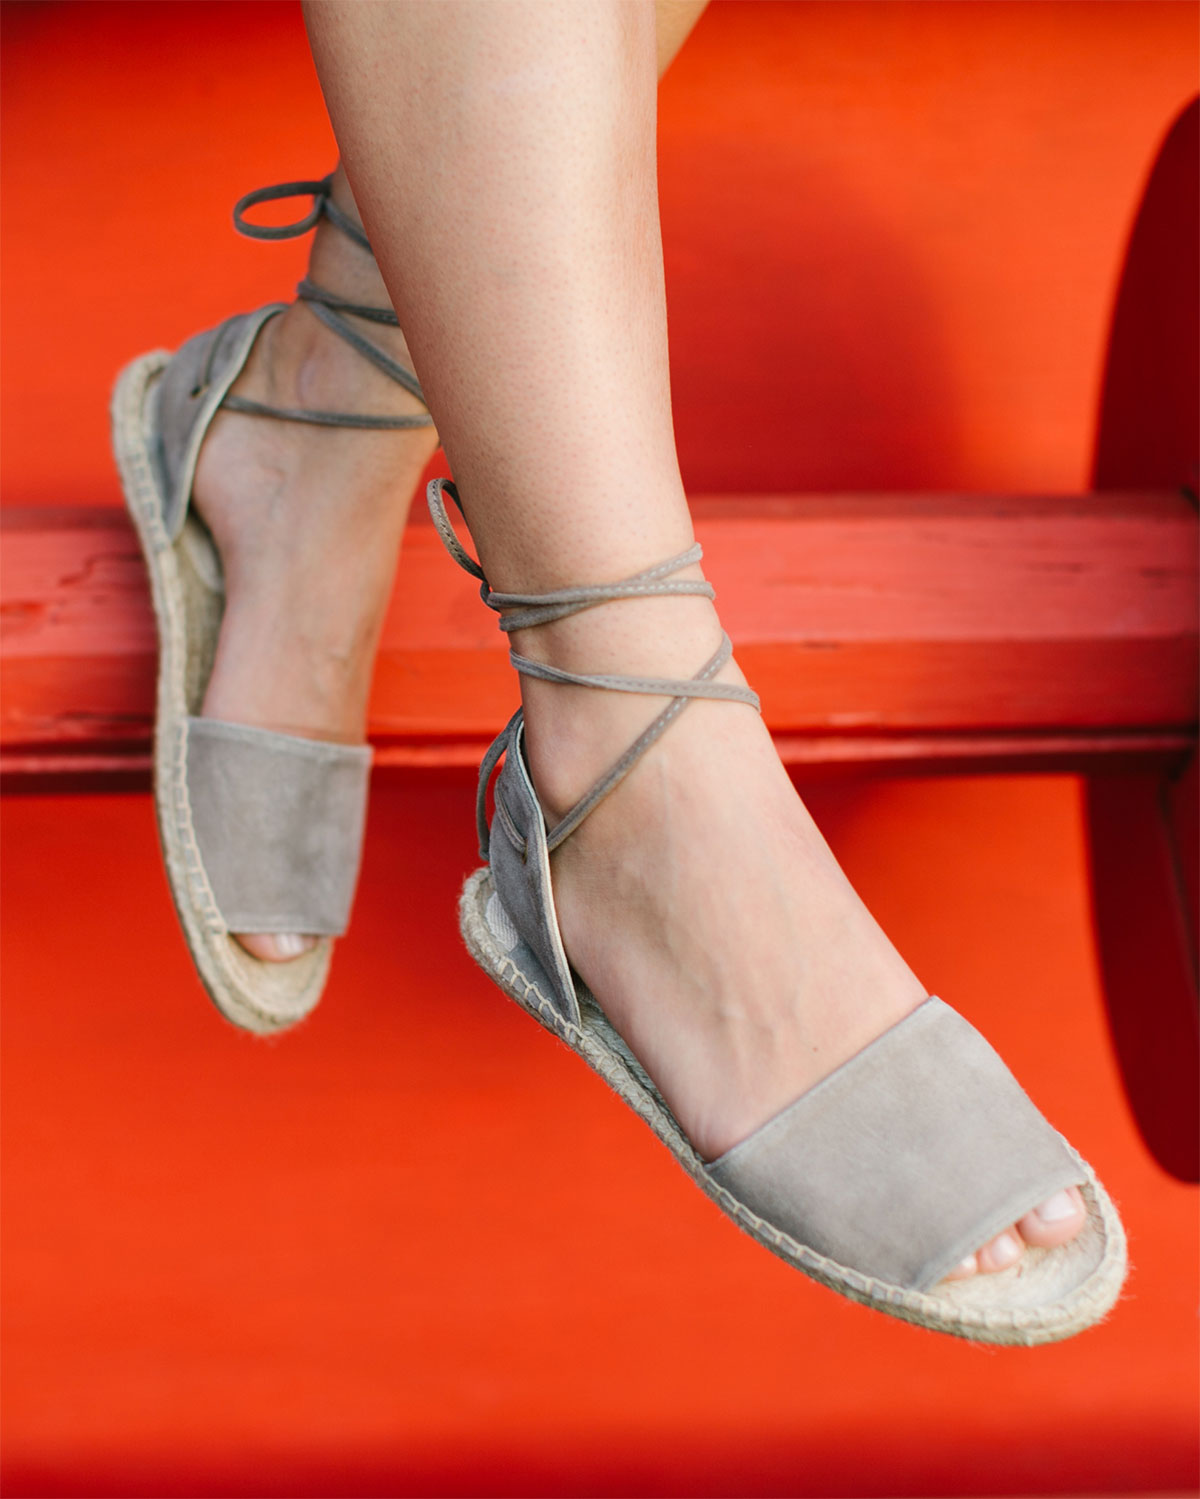 b34206e40ba0 Balearic Tie Up Sandal - The finishing touch for your all day exploring  look which transitions into happy hour. Pairs perfectly with sunsets and  margaritas.